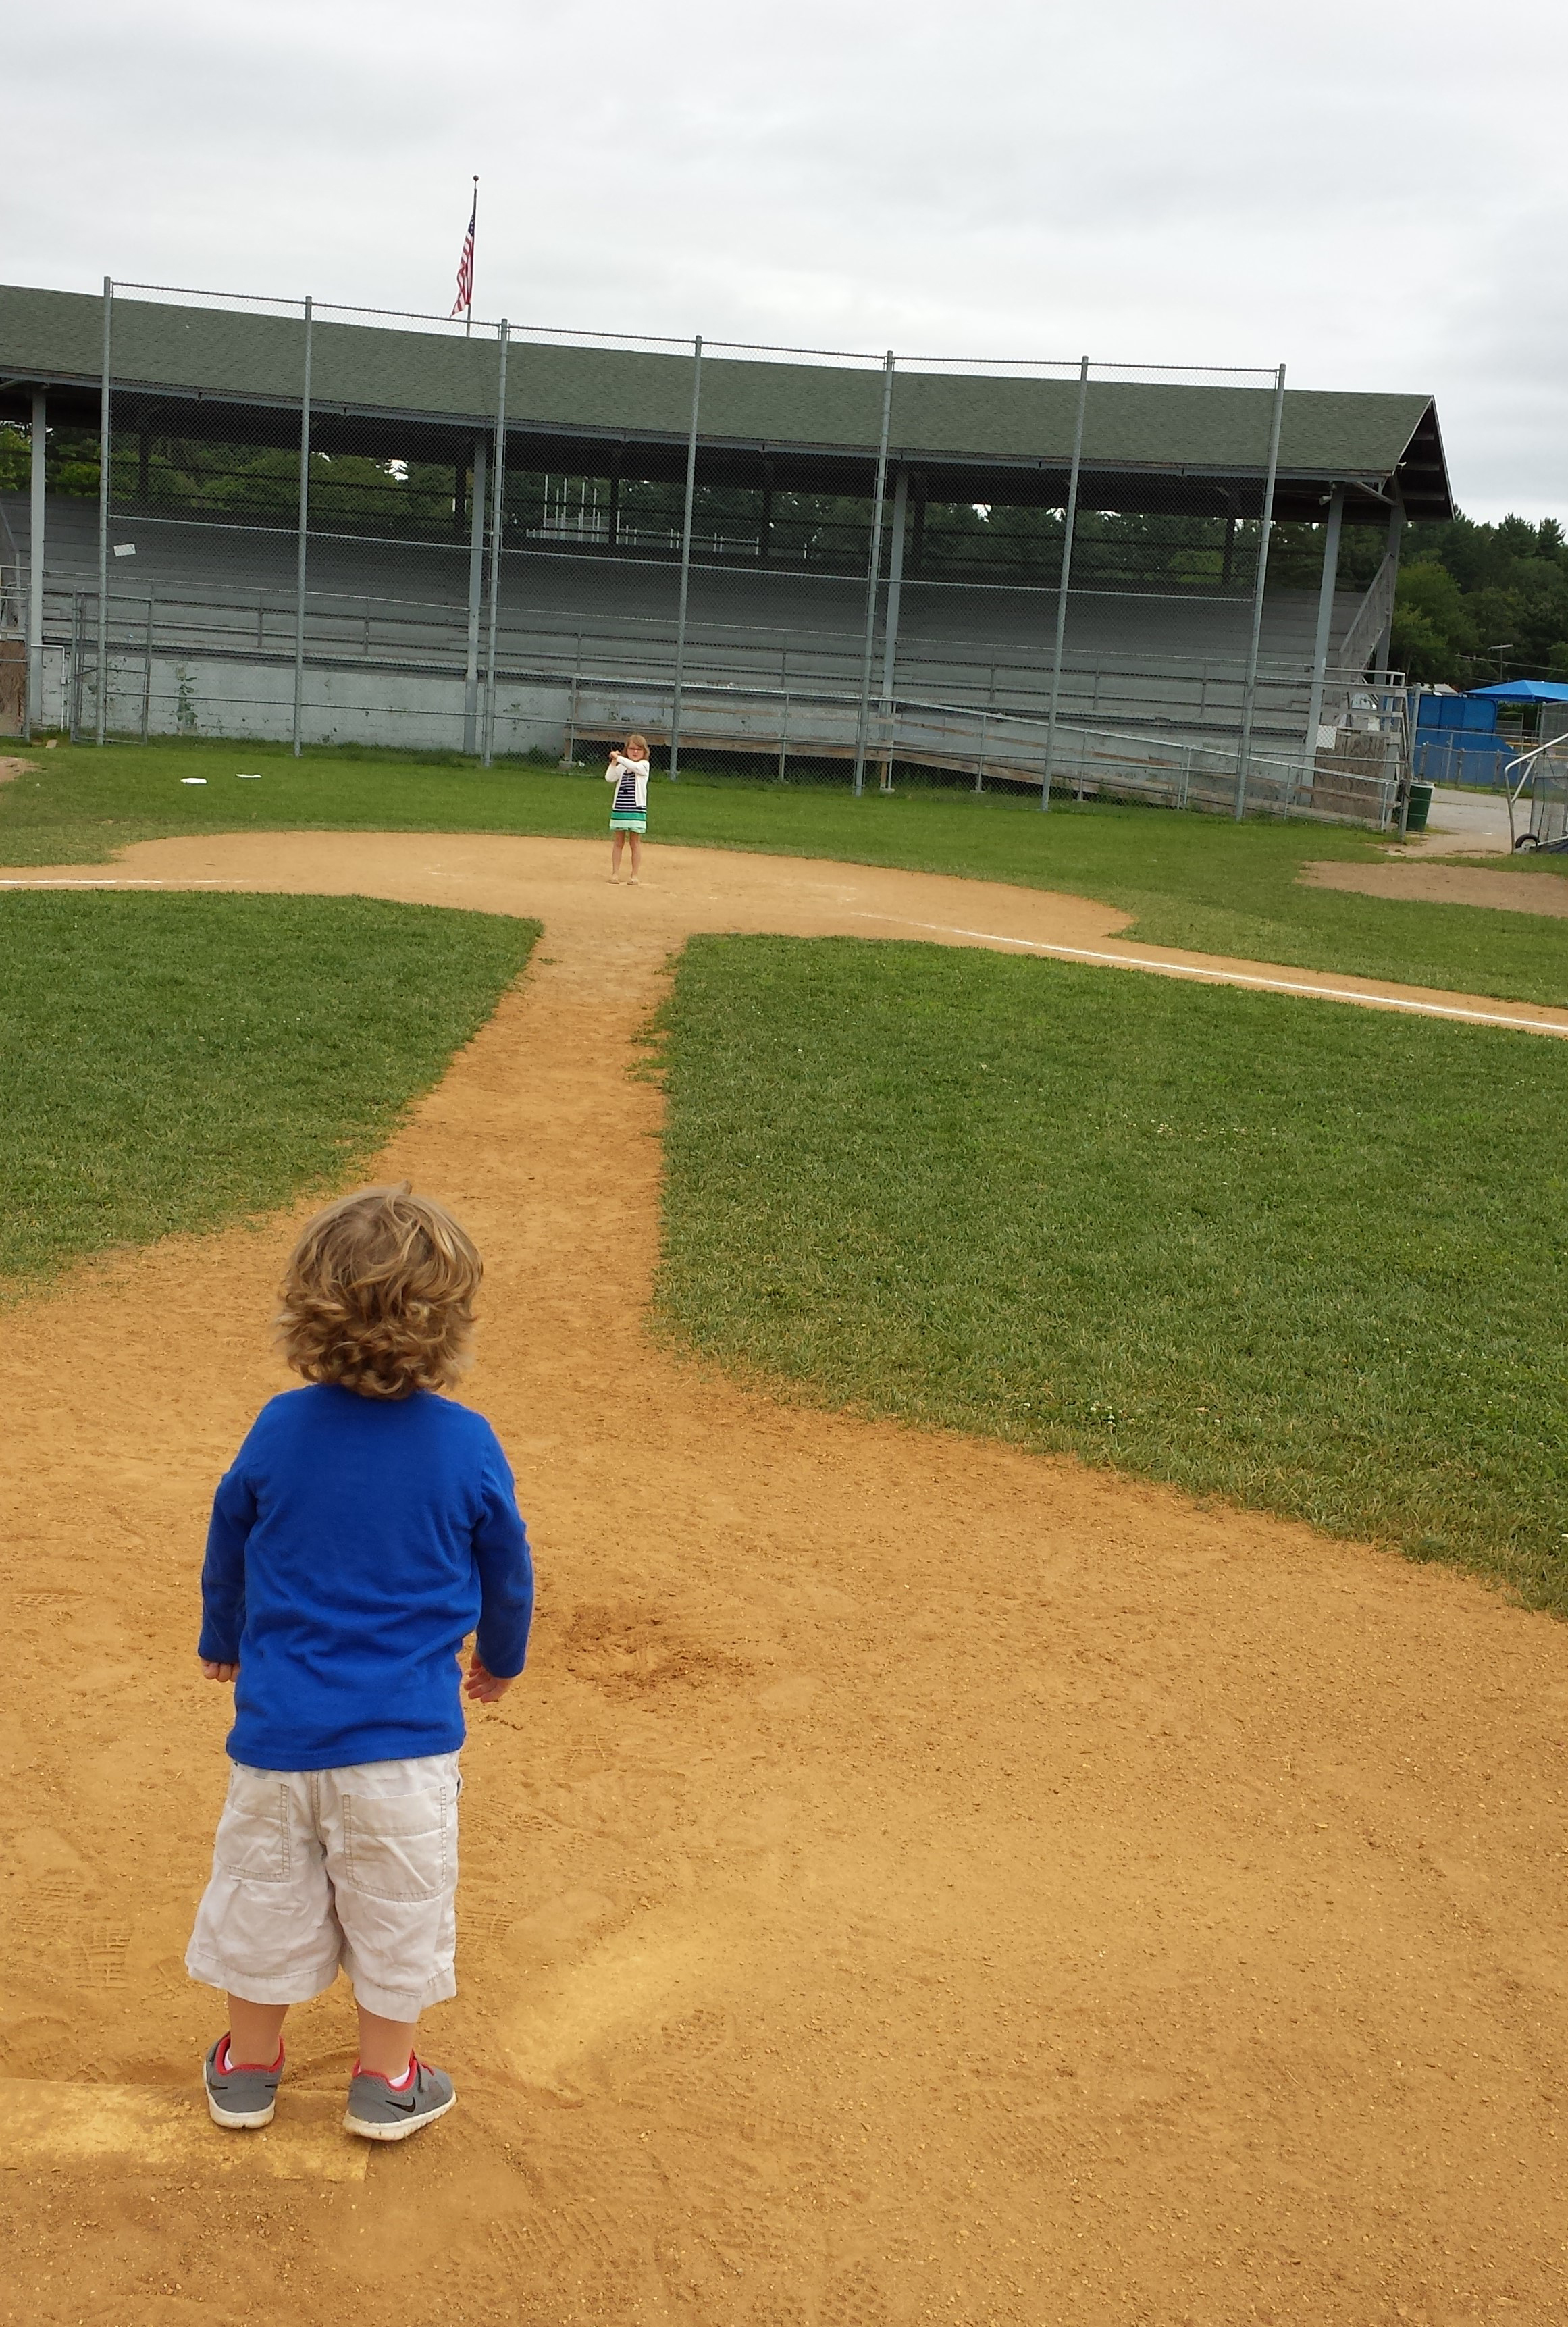 How to have an adventure day with Dad: Play imaginary Baseball!